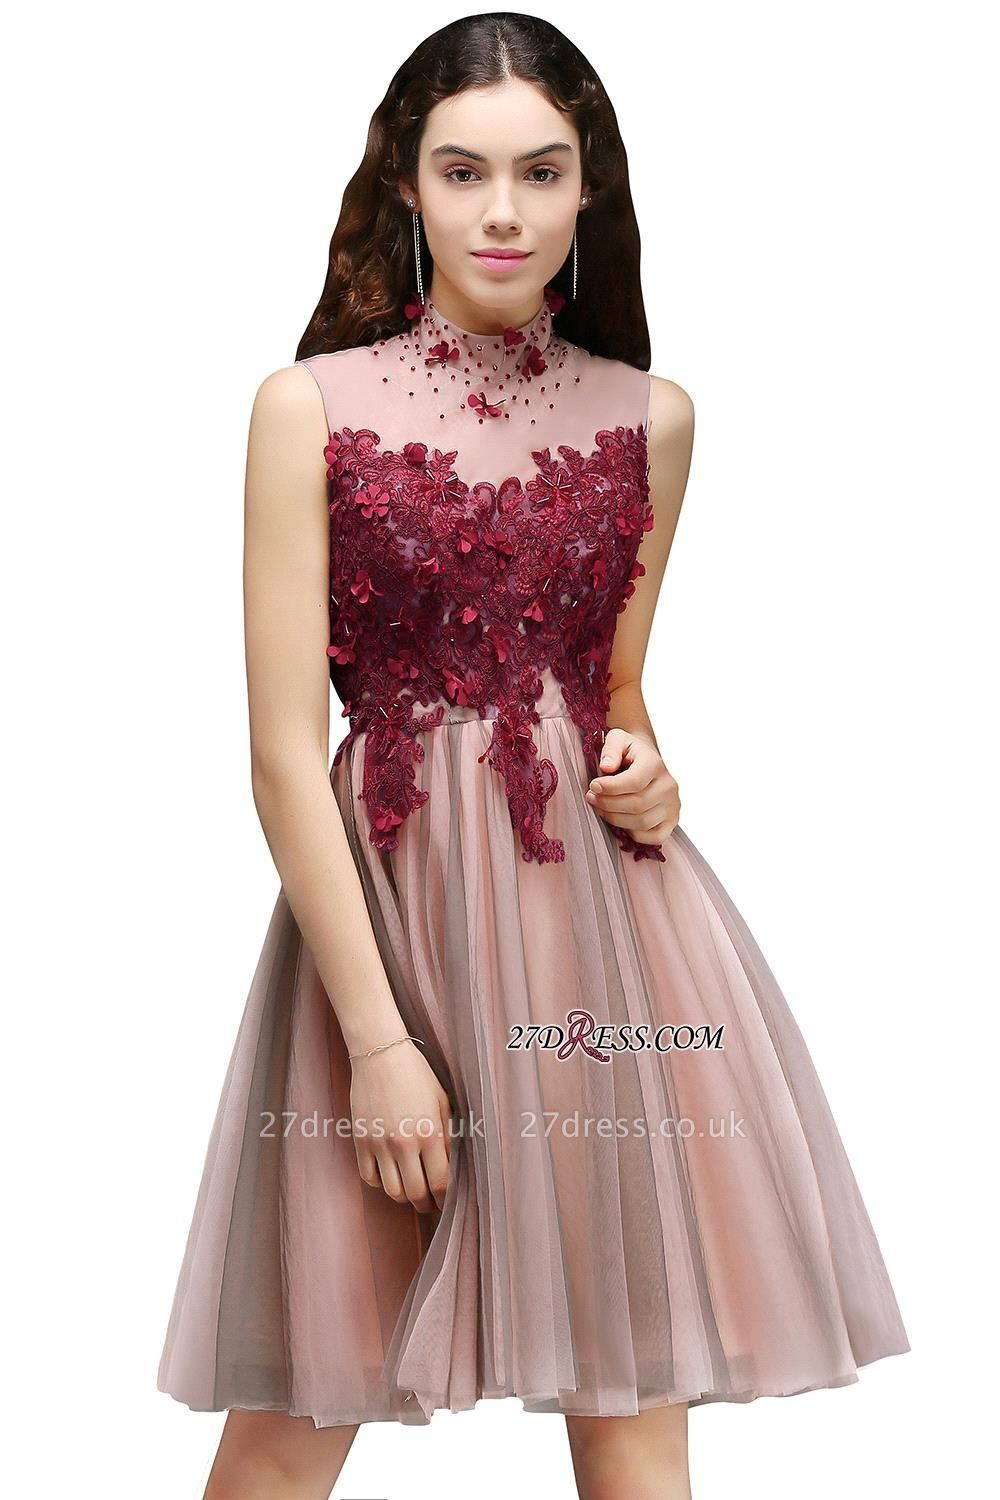 Burgundy-Flowers Hollow-Back High-Neck Tulle Sexy Homecoming Dress UKes UK